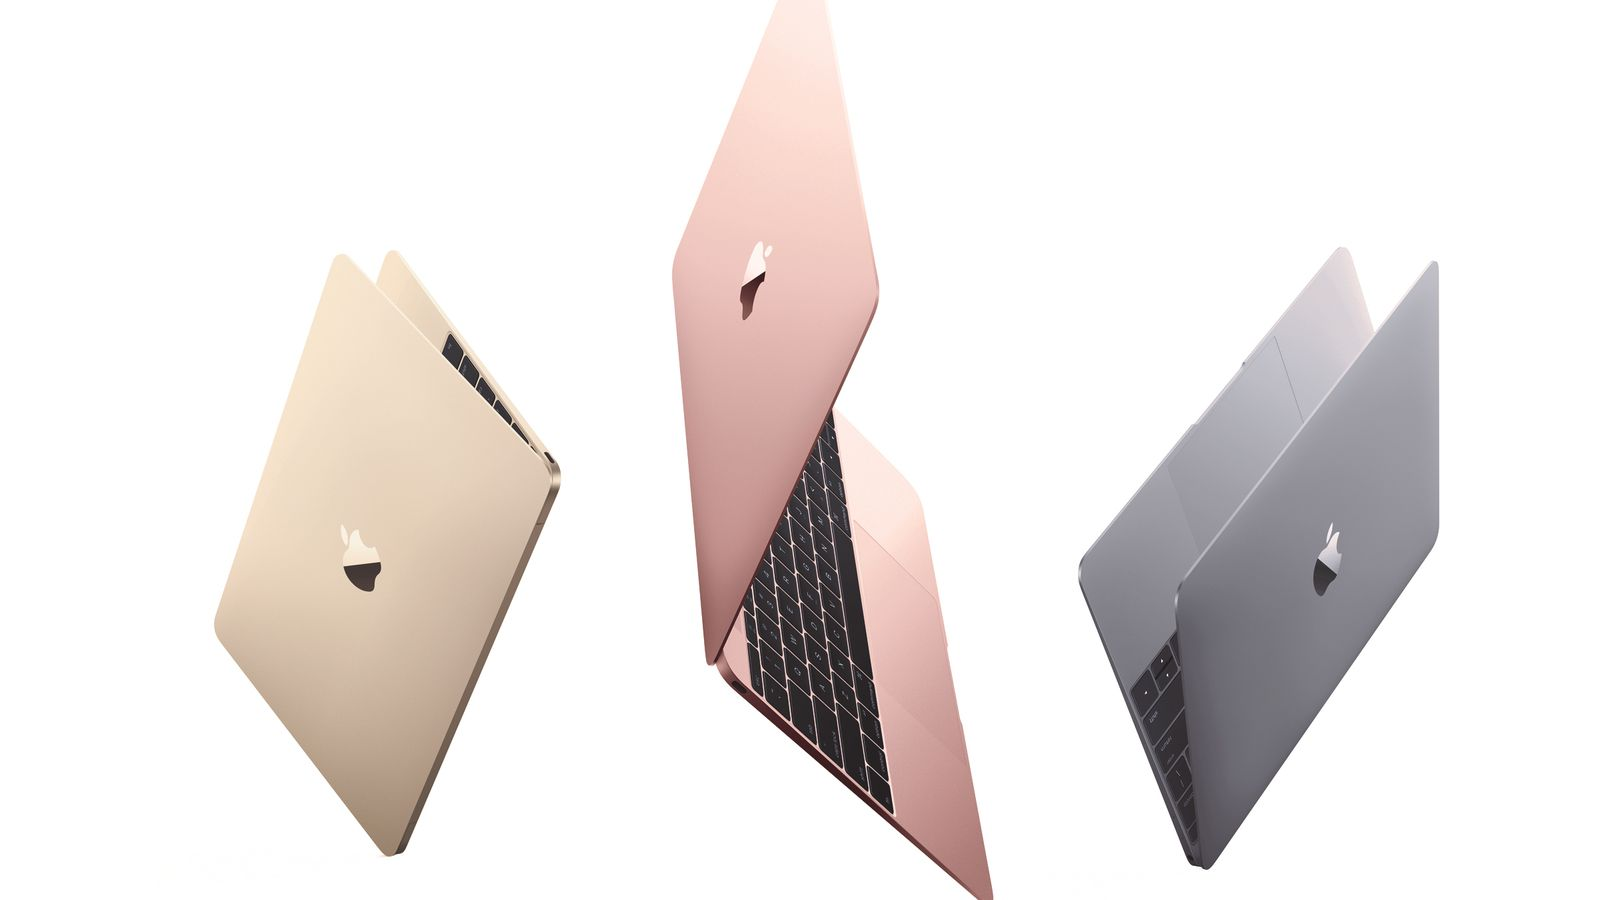 how to make macbook pro faster